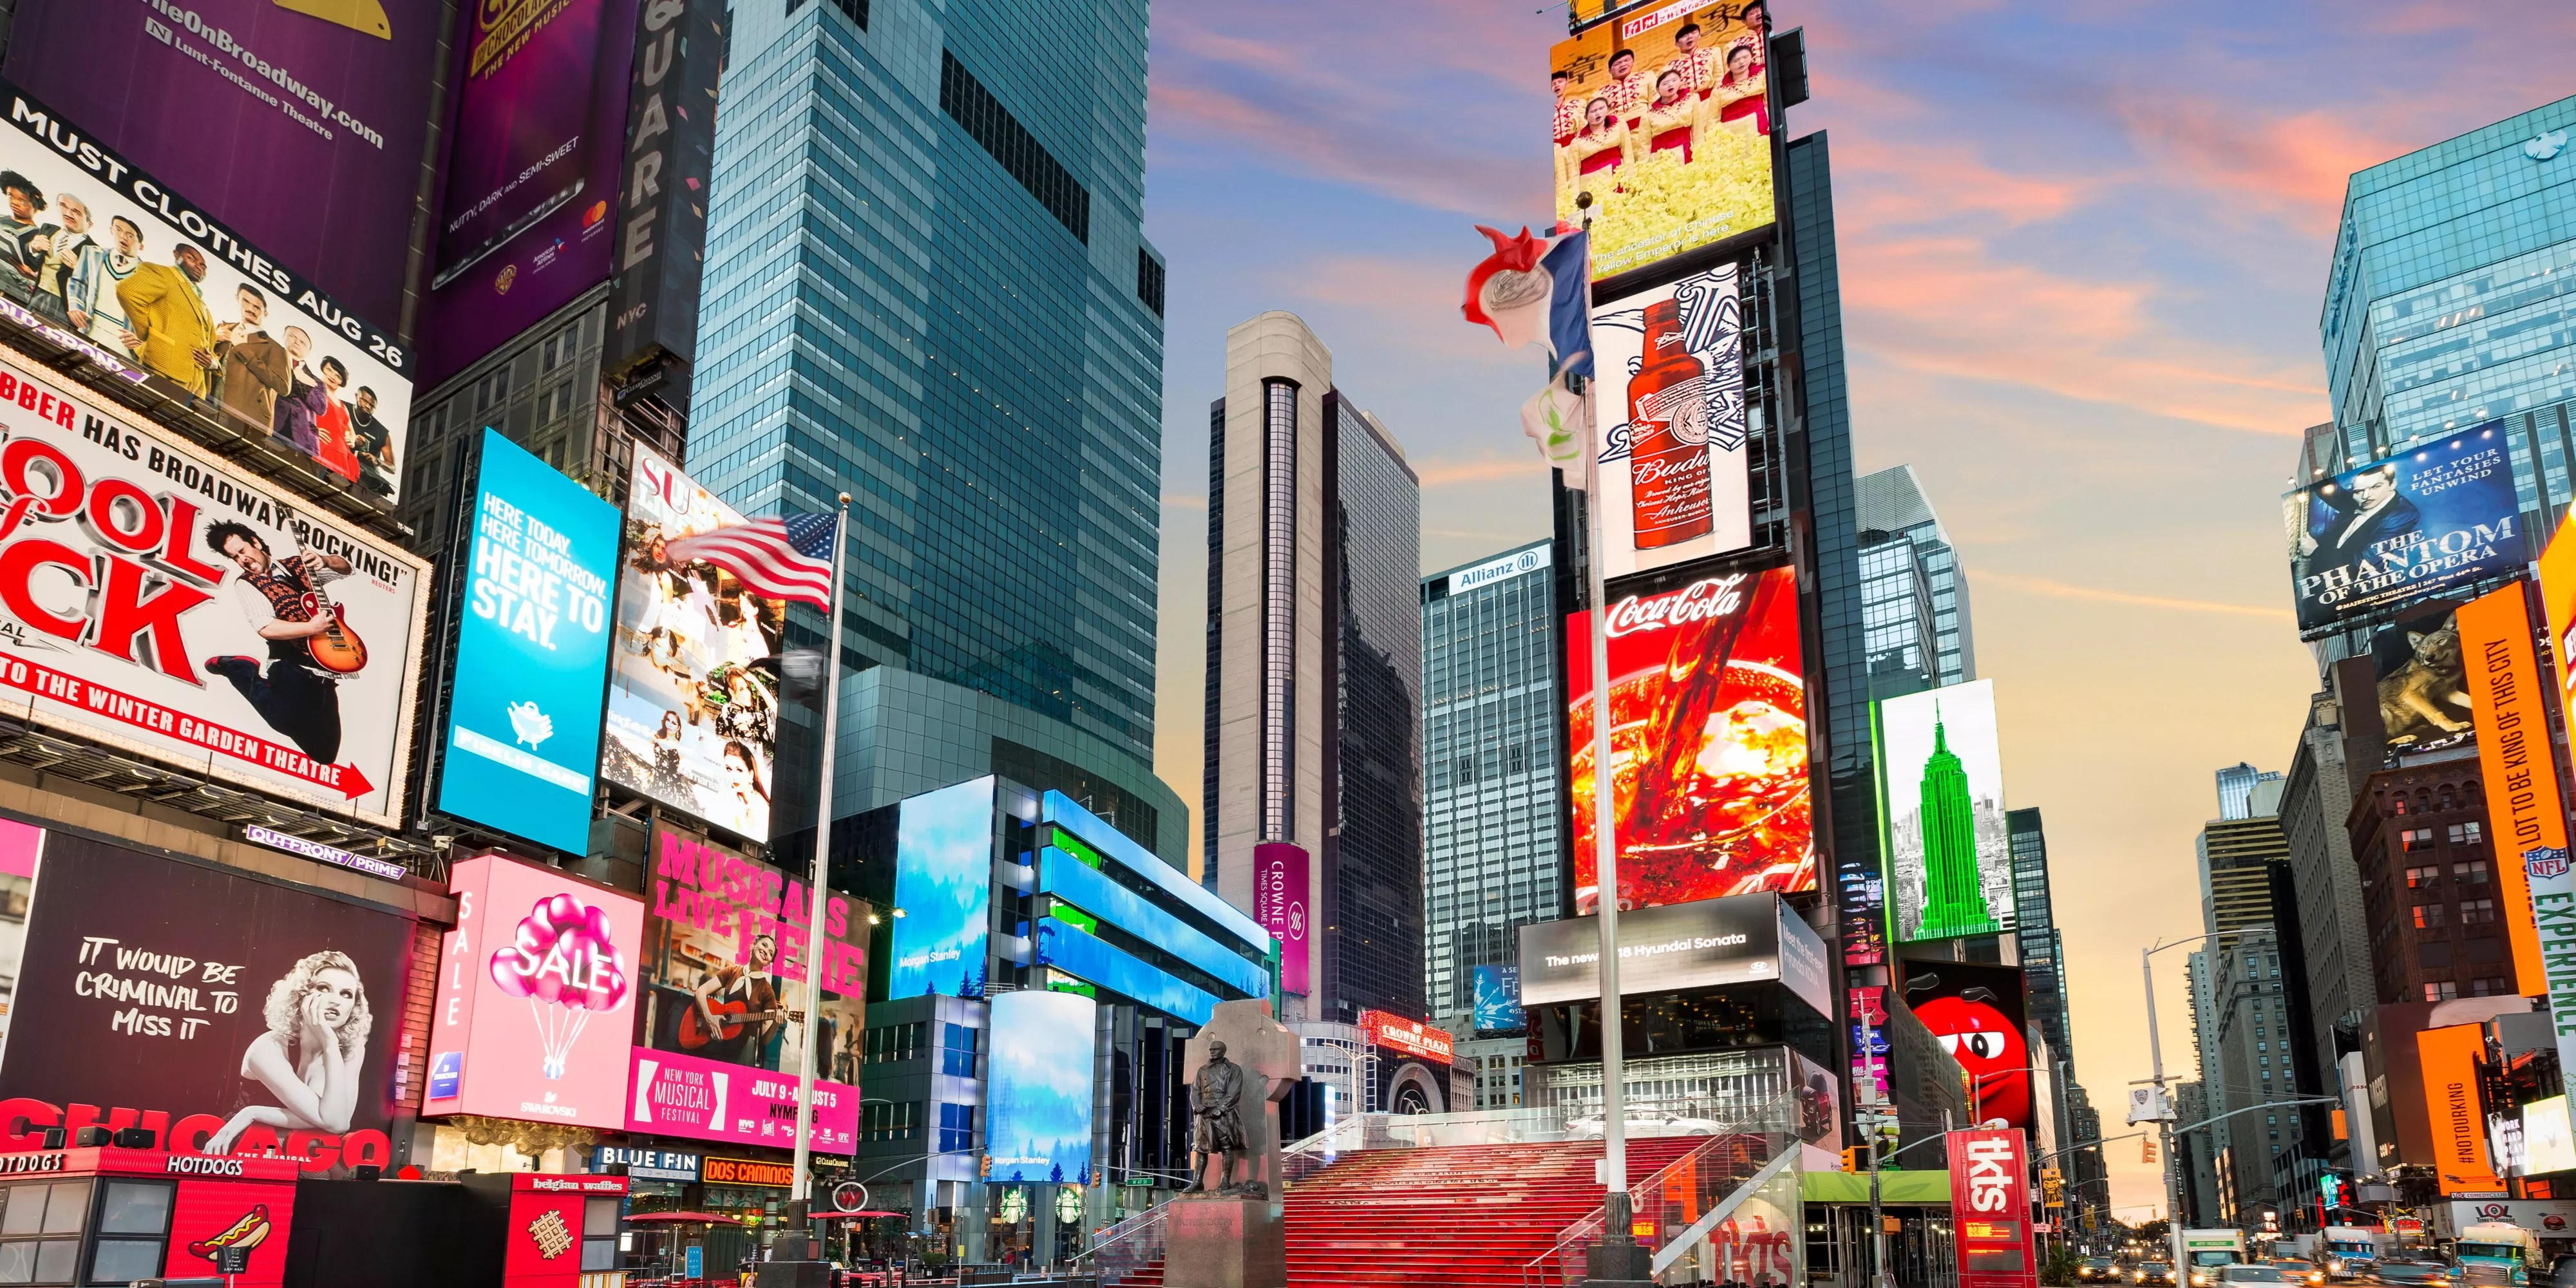 Plaza Werbung Luxury Hotels In Times Square - Broadway | Crowne Plaza